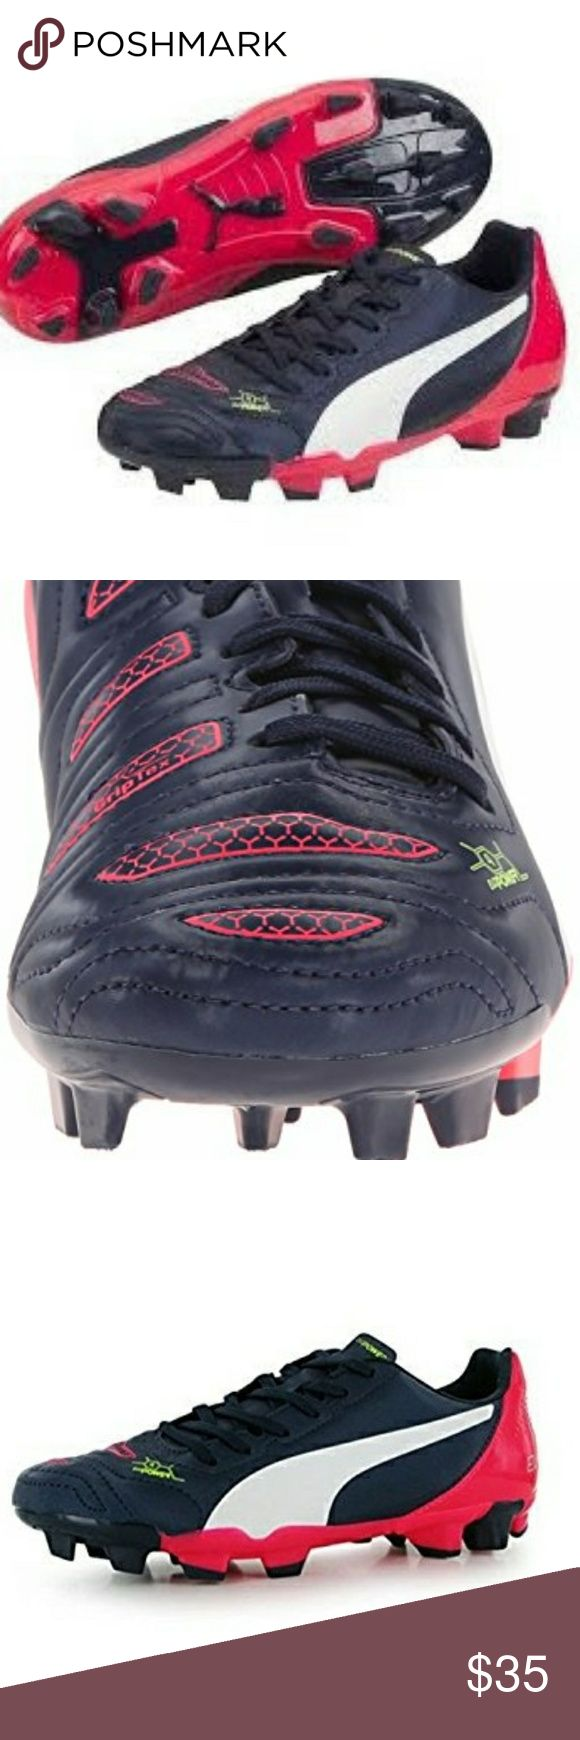 Kids Puma Soccer Cleats Bundle this item with others for best value and 5% off Puma Shoes